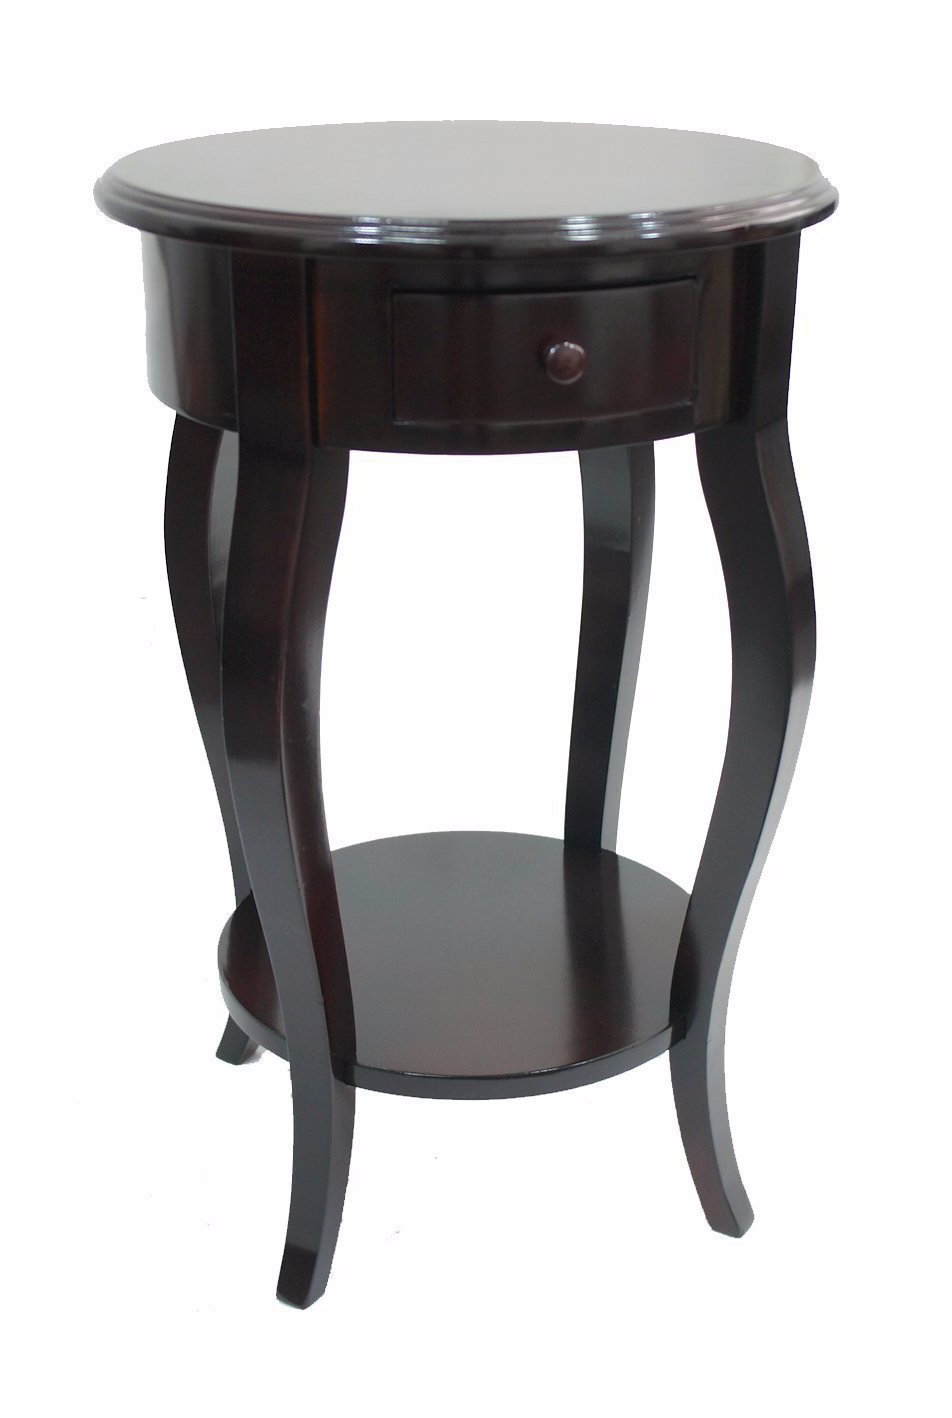 round accent side table dark brown urbanest keffl drawer outdoor lounge furniture gray nesting tables oversized armchair painted bedside cabinet tall acrylic end green pulaski